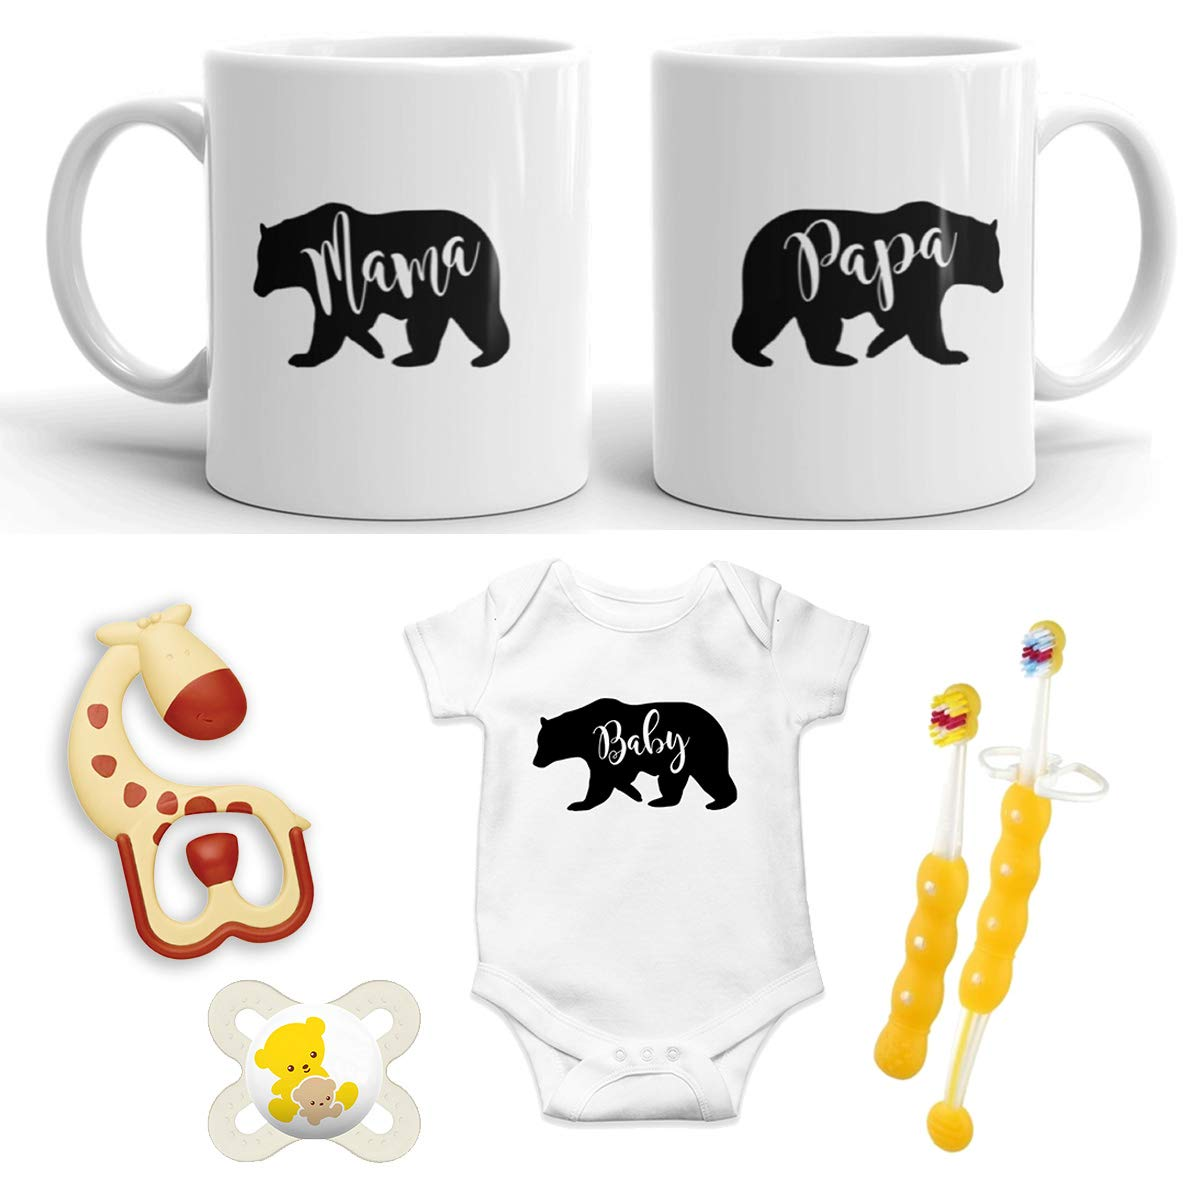 Mama Bear New Mommy and Daddy 11 oz Mug Set withBaby Bear Baby Romper 0-3 Months Baby Bear Pregnancy Gift Top Mom and Dad Gift Set for New and Expecting Parents to Be Papa Bear